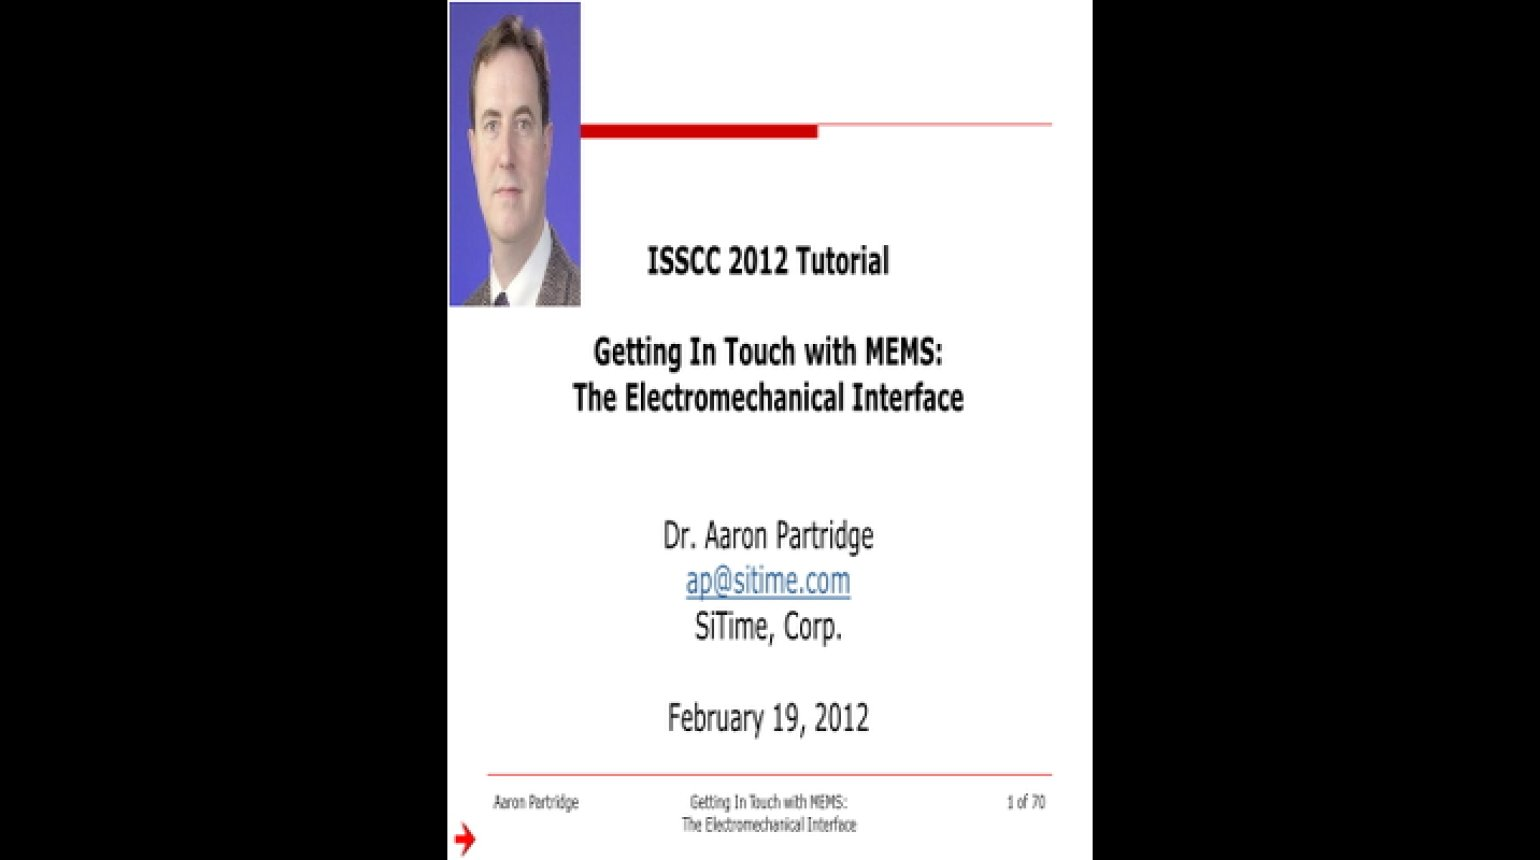 Getting In Touch with MEMS: The Electromechanical Interface Video